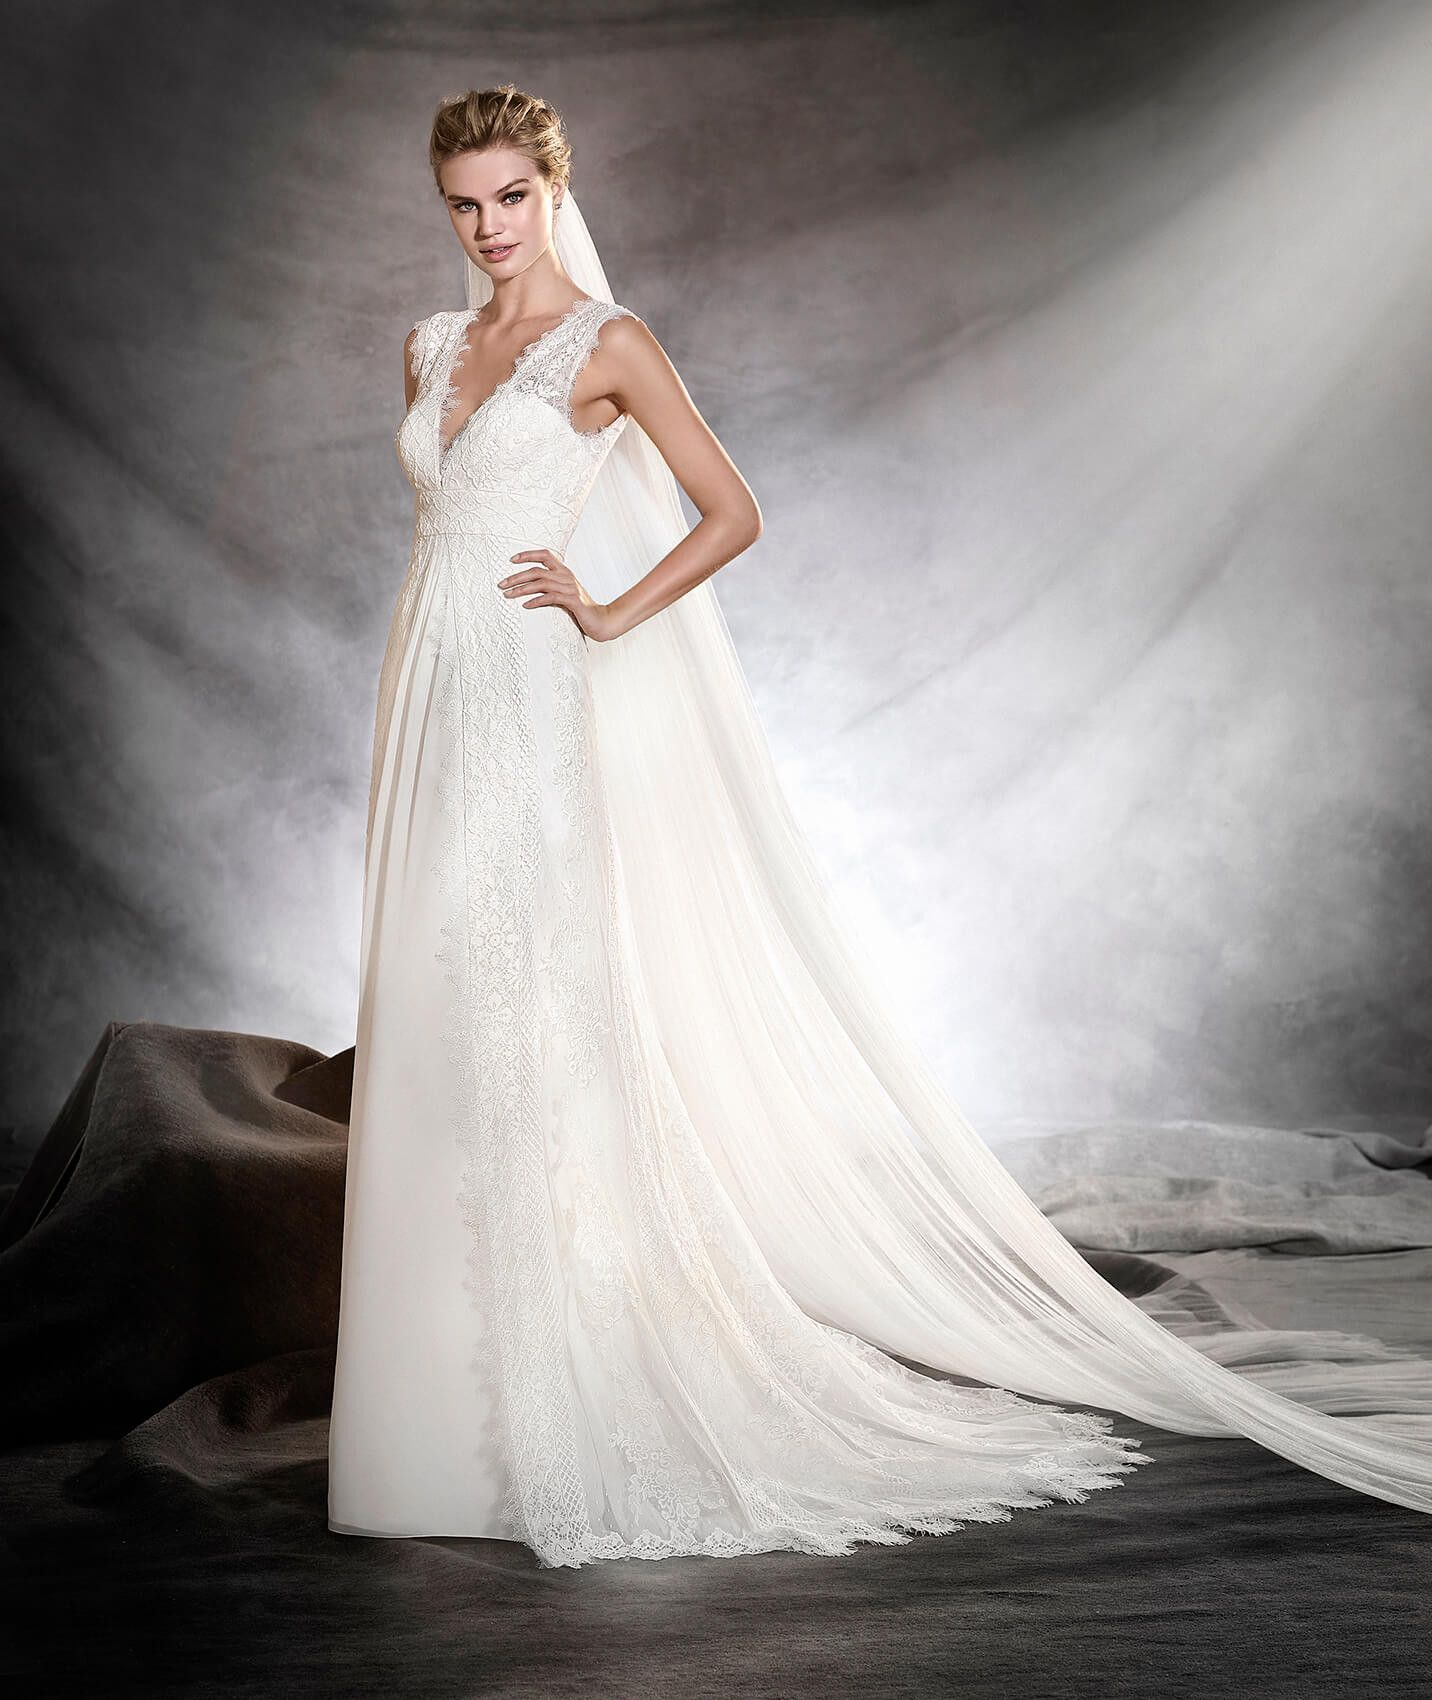 Odilia is a beautiful empireline wedding dress with a flared skirt